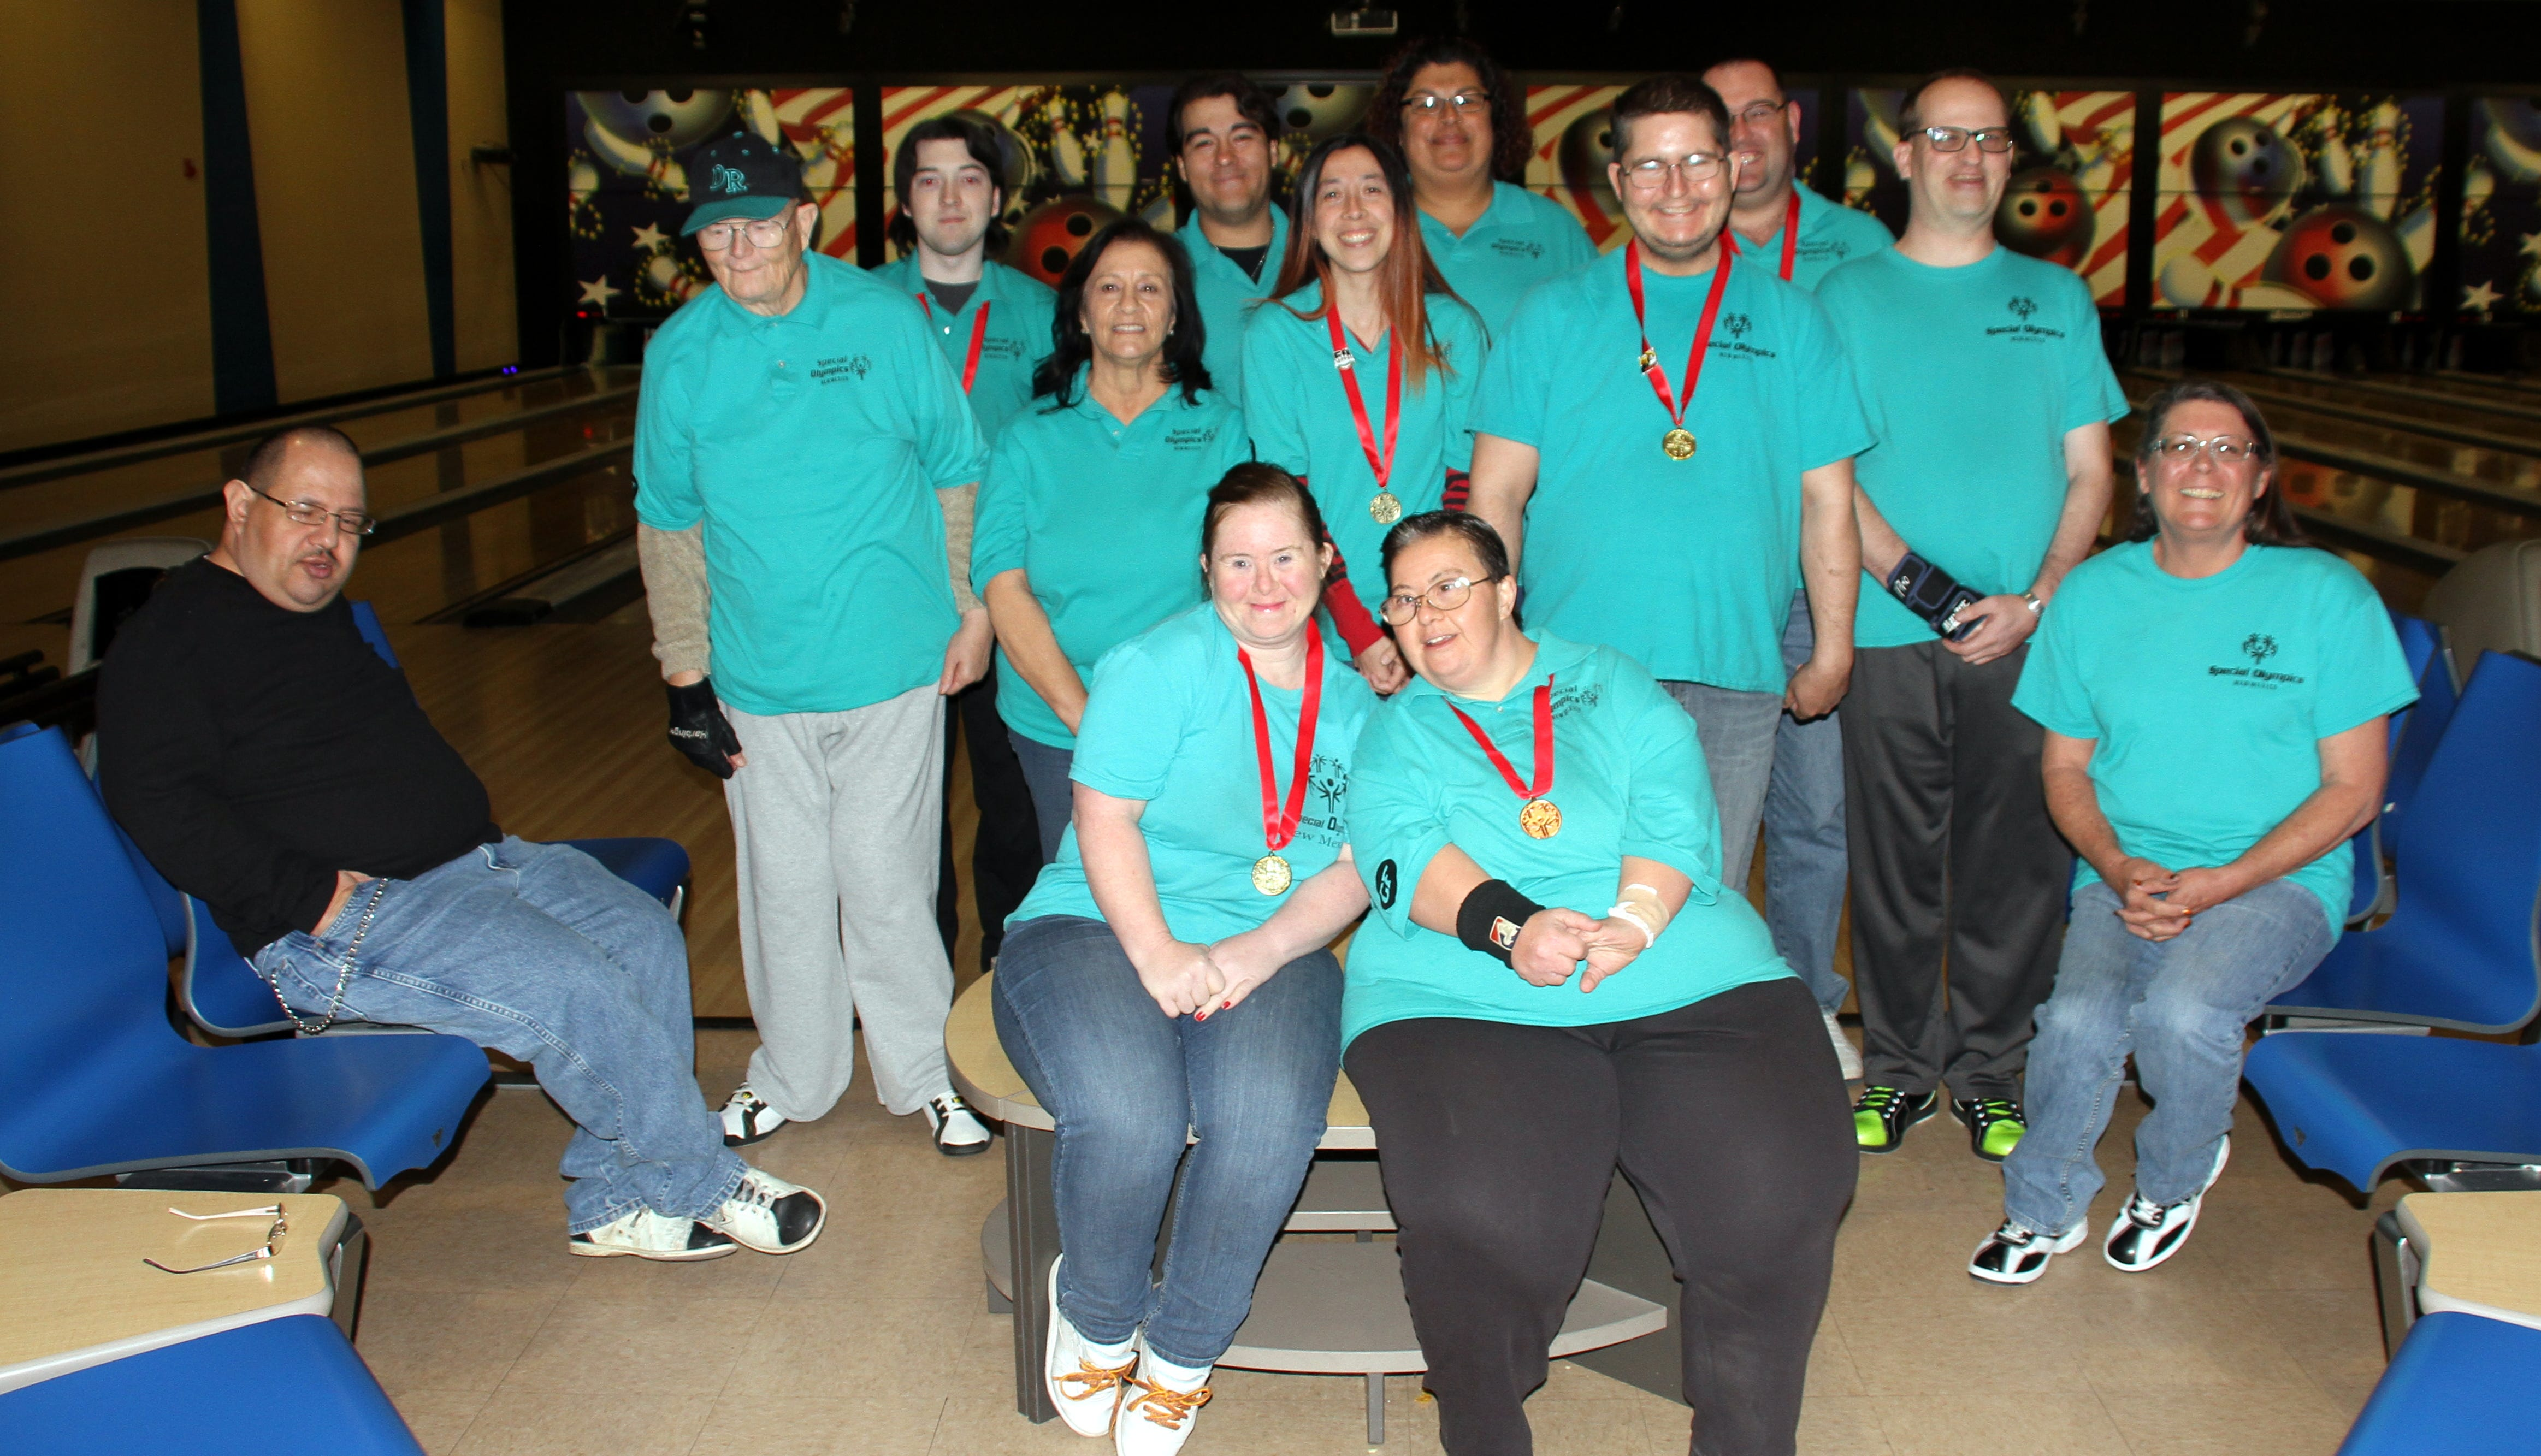 The Deming Roadrunners returned from the New Mexico Special Olympics State Bowling Tournament held last weekend north of Albuquerque with quite a medal haul. The team had four gold medal winners a silver and a bronze. Each athlete raised the bar for Deming Special Olympics.